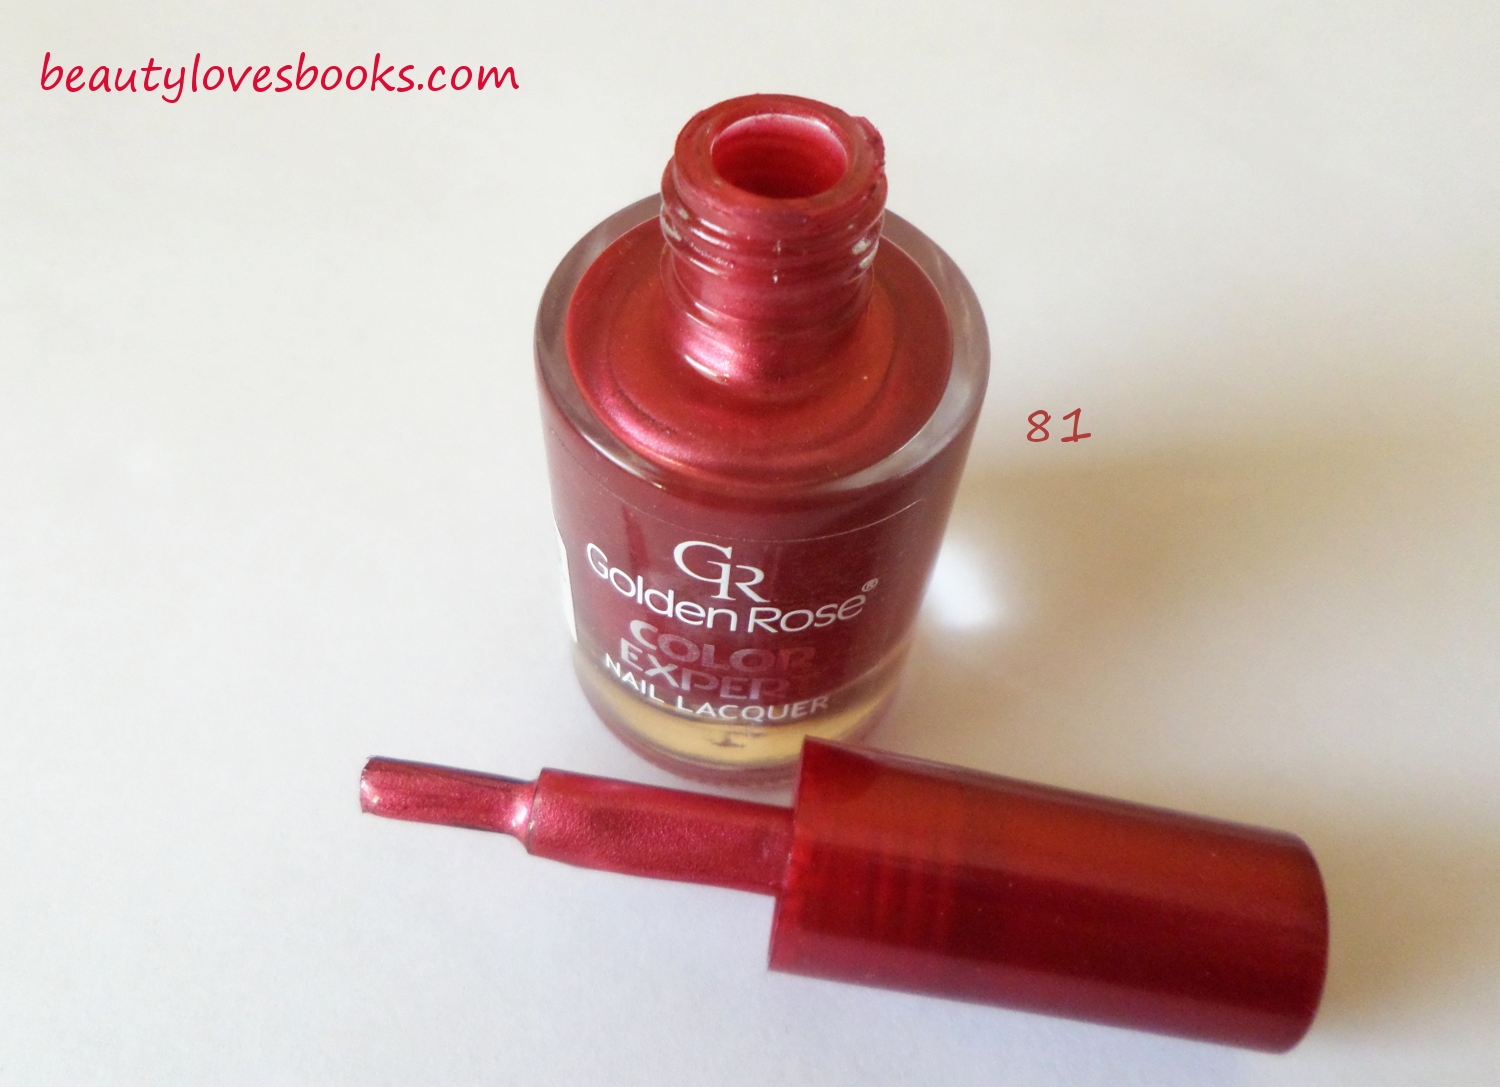 Golden rose Color expert nail polish in 21